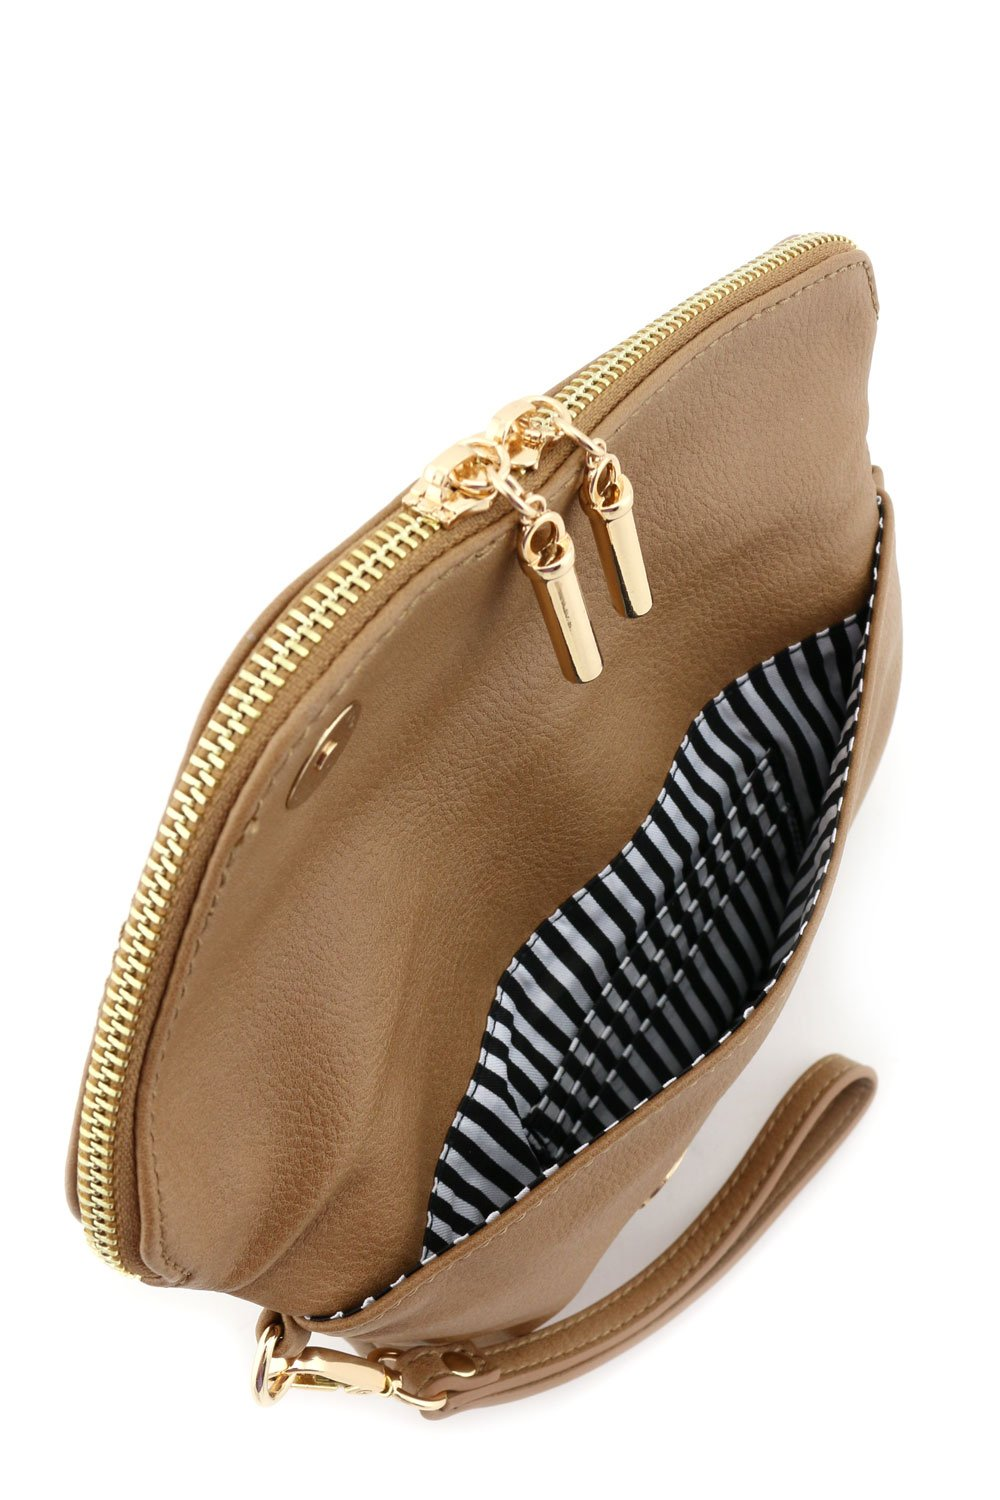 Envelope Wristlet Clutch Crossbody Bag with Chain Strap Stone by FashionPuzzle (Image #5)